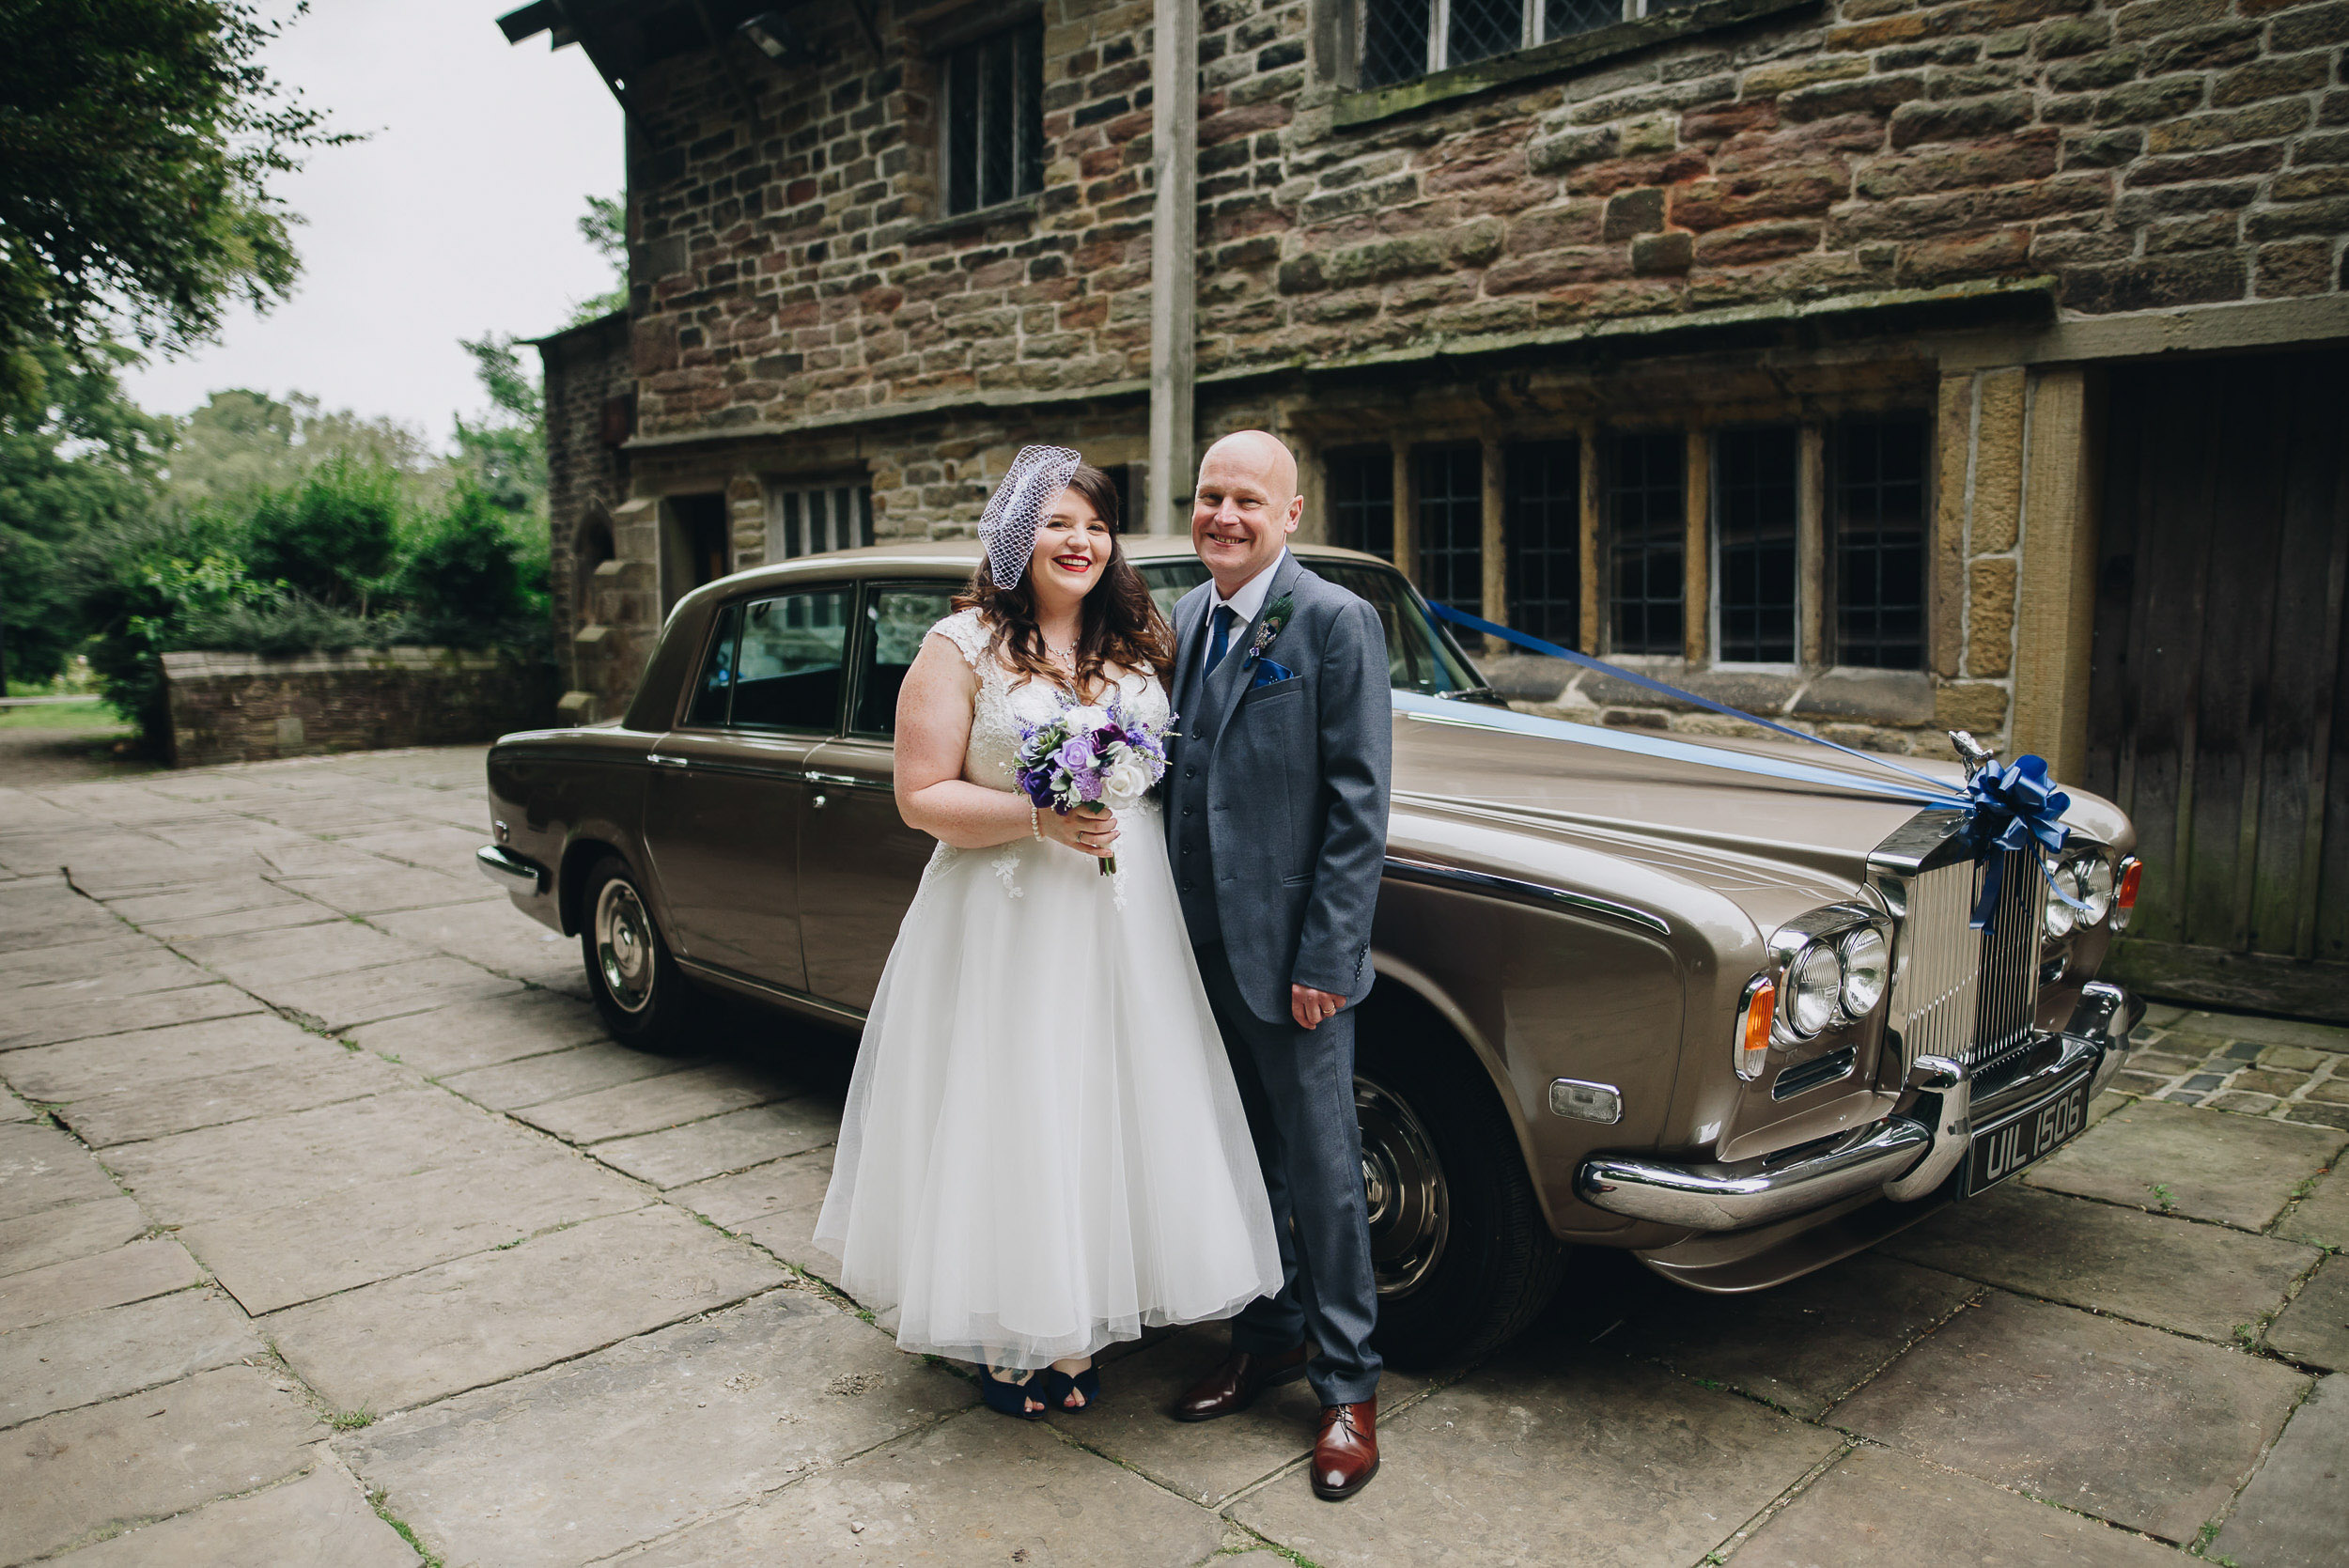 Smithills-hall-wedding-manchester-the-barlow-edgworth-hadfield-11.jpg